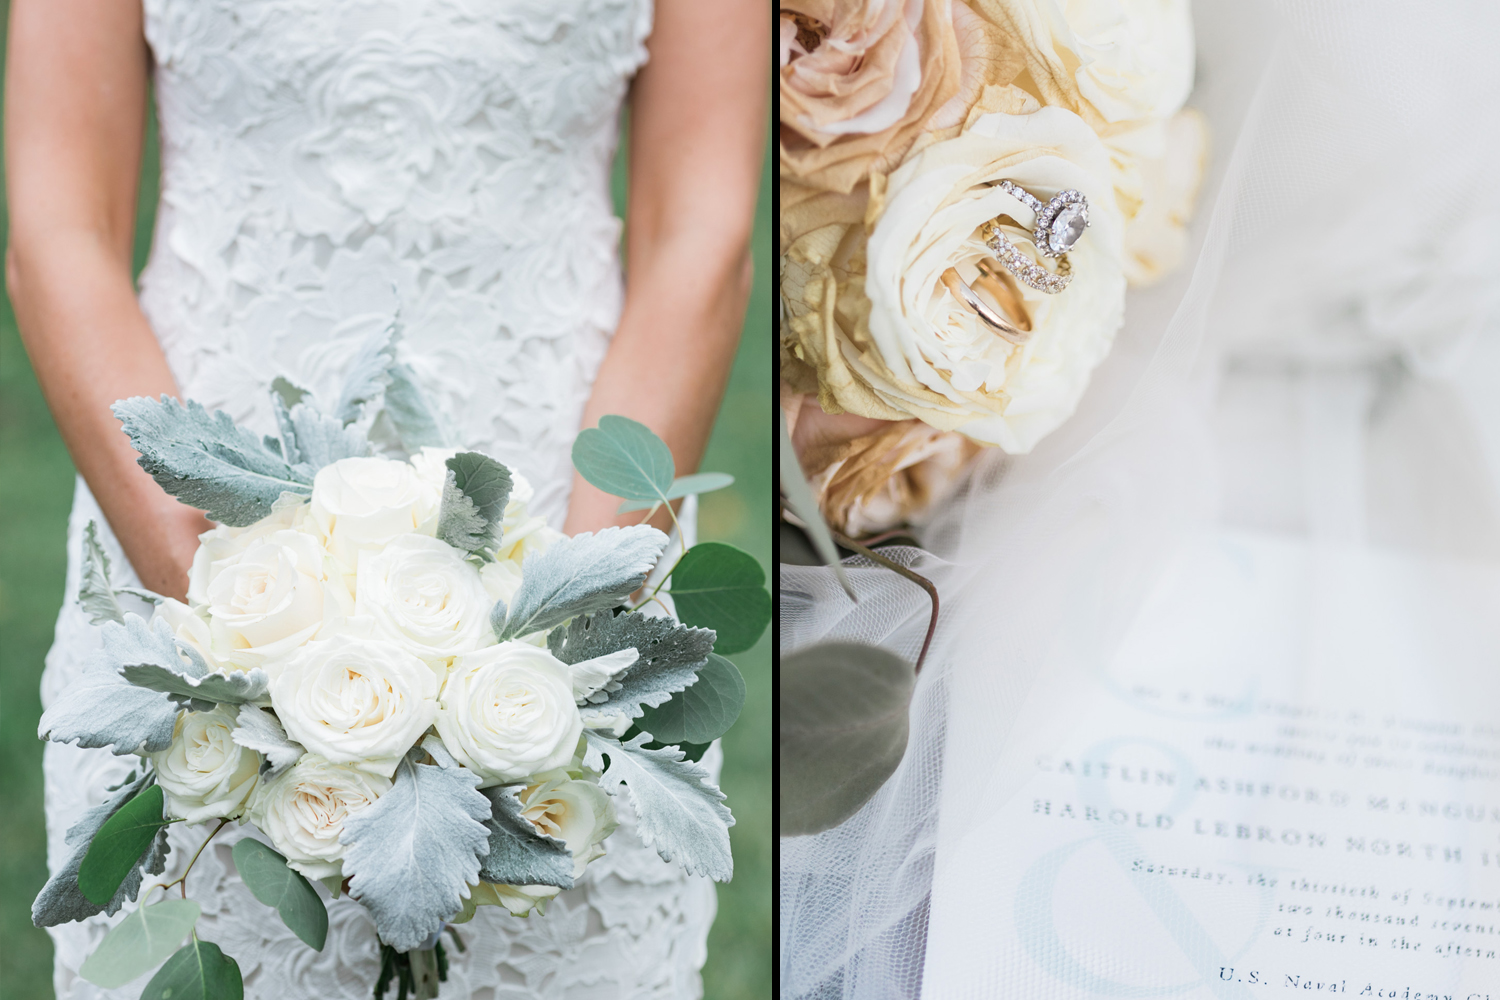 image of white rose bridal bouquet and ring and invitation detail